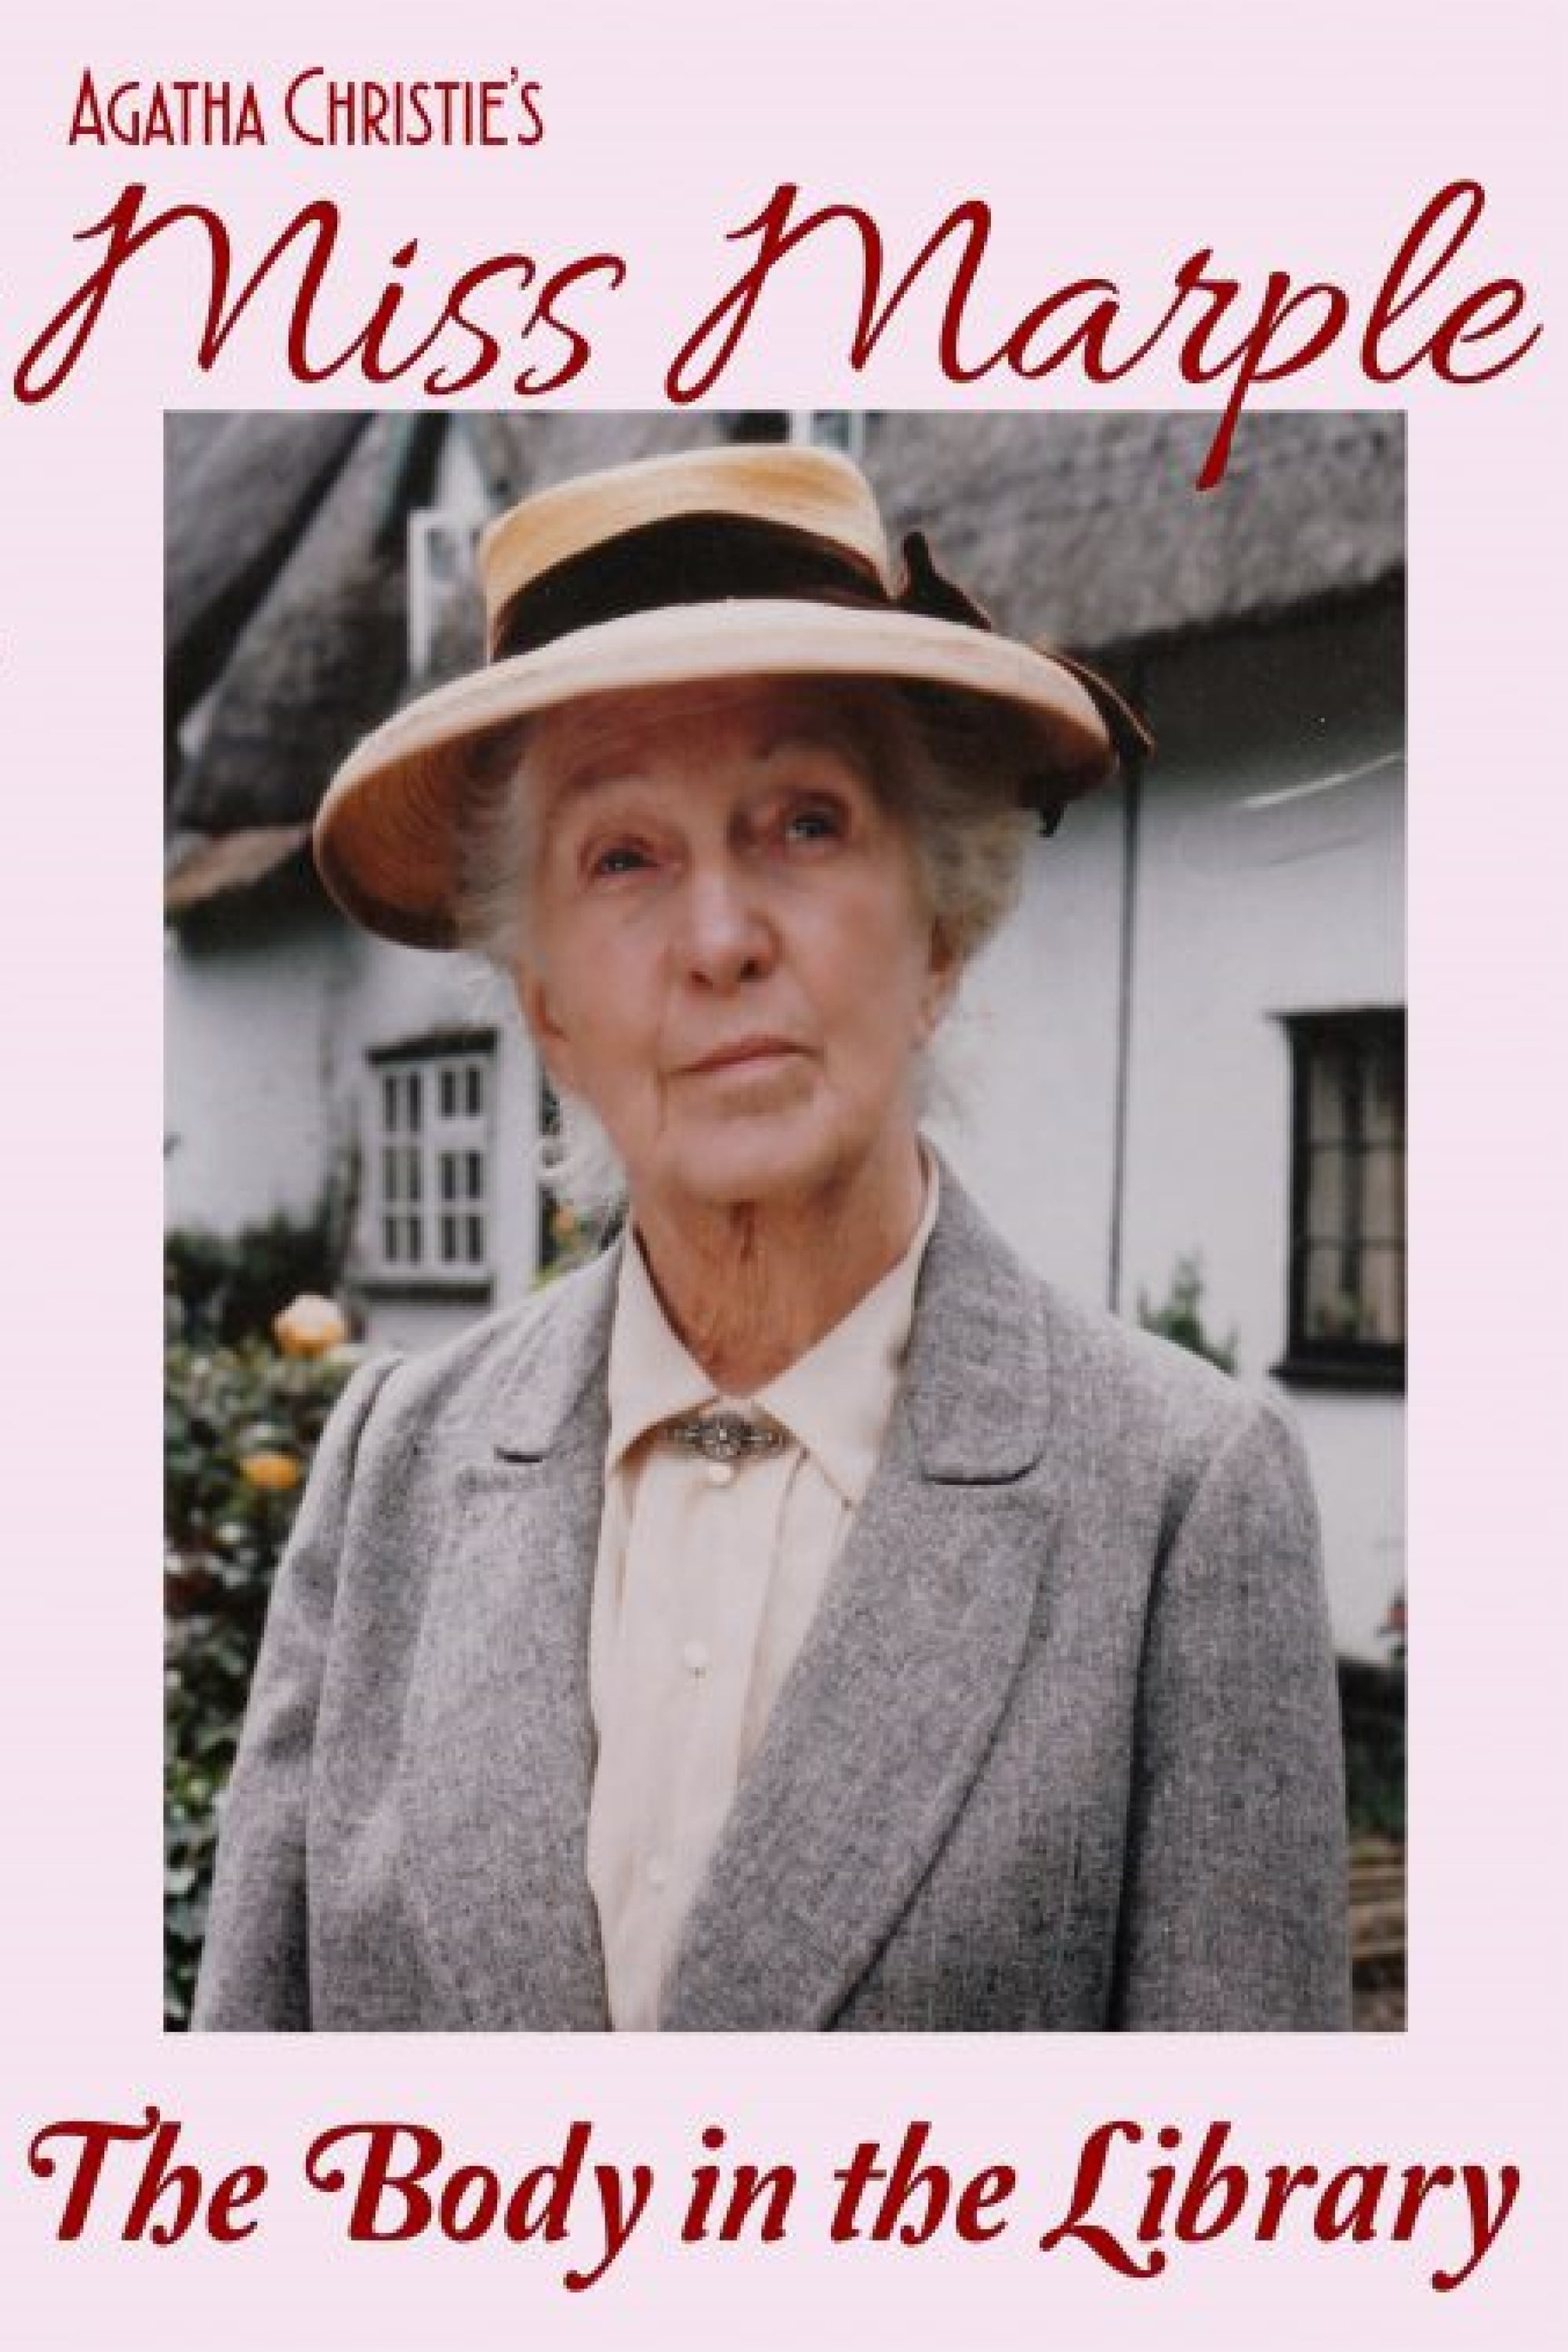 Miss Marple: The Body in the Library (1984)